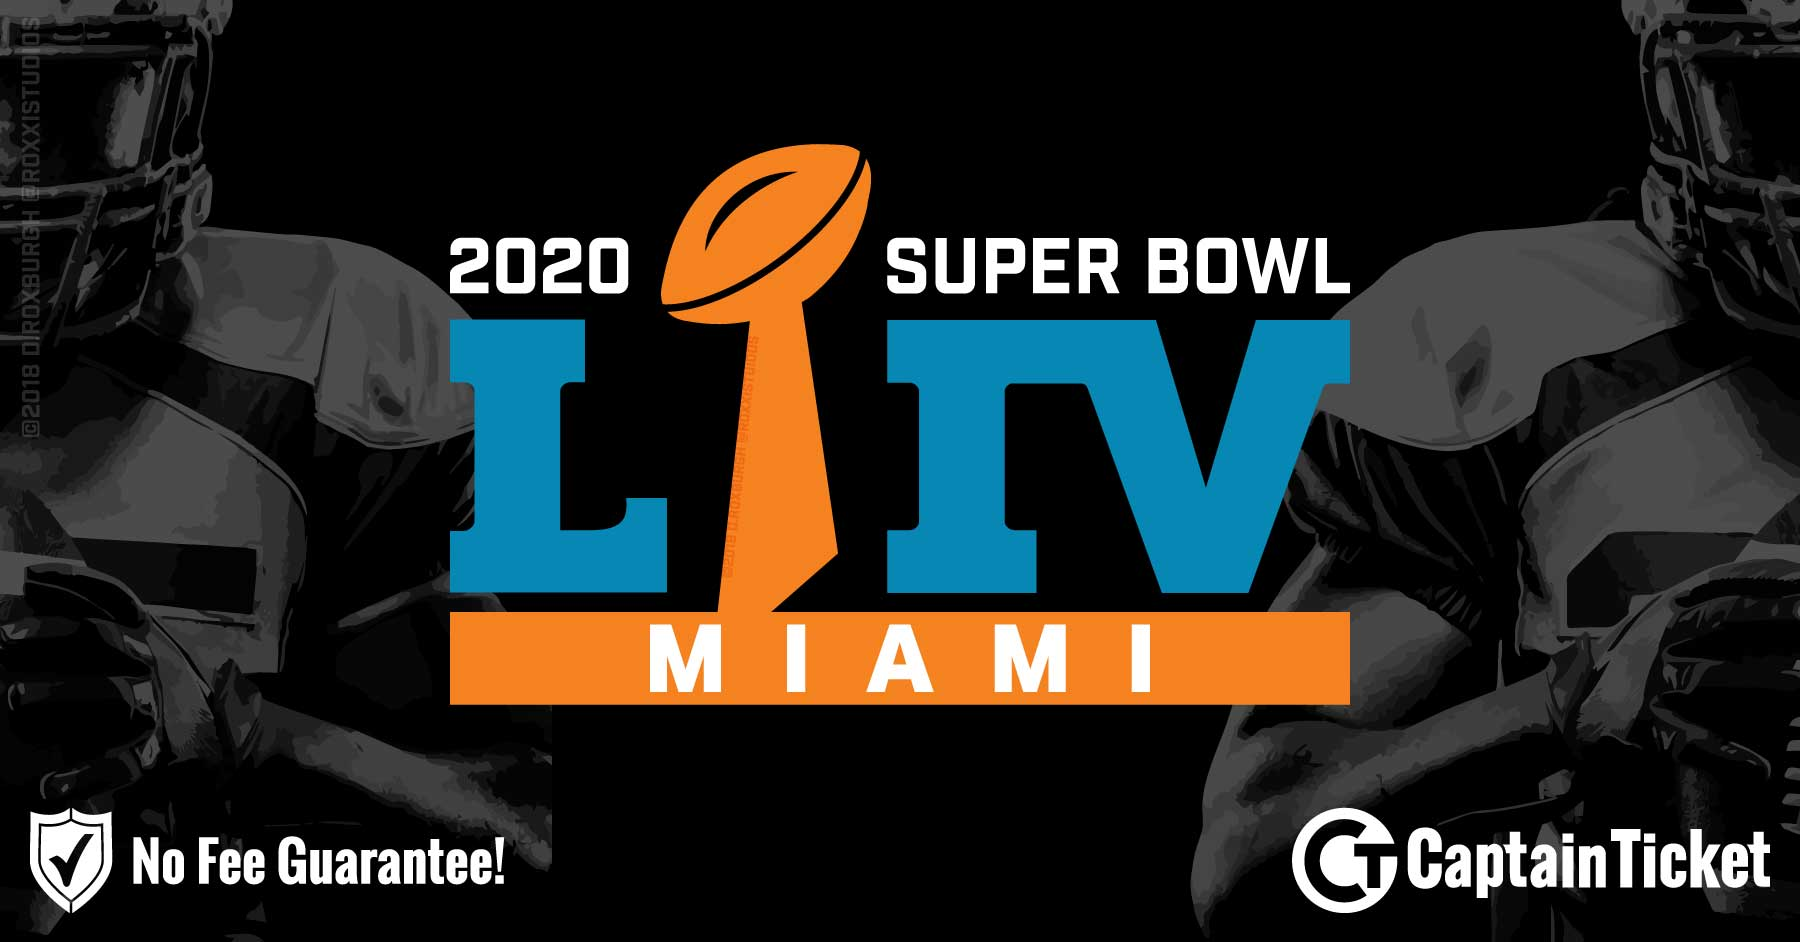 Super Bowl LIV 2020 Logo